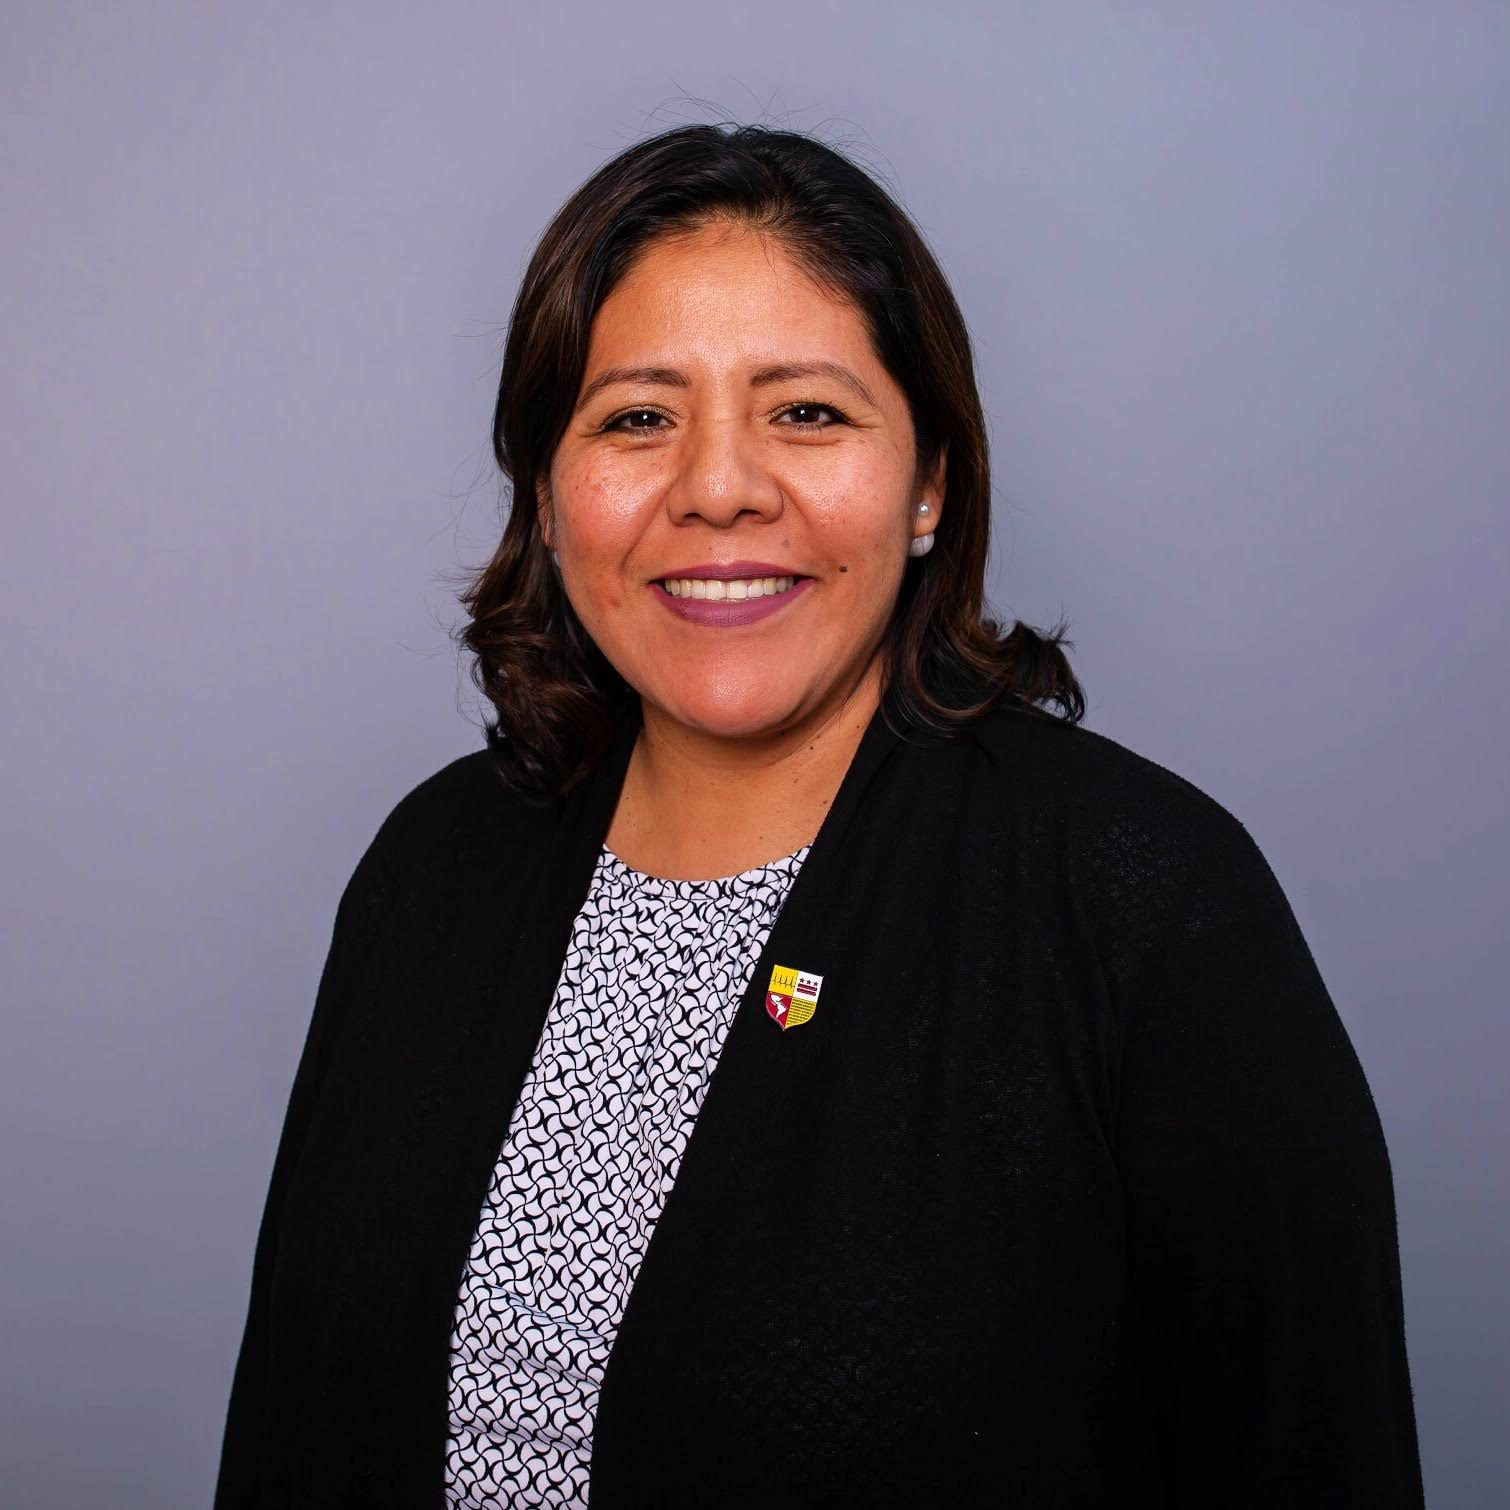 Martha Sanchez - SPED Coordinator and Instructor